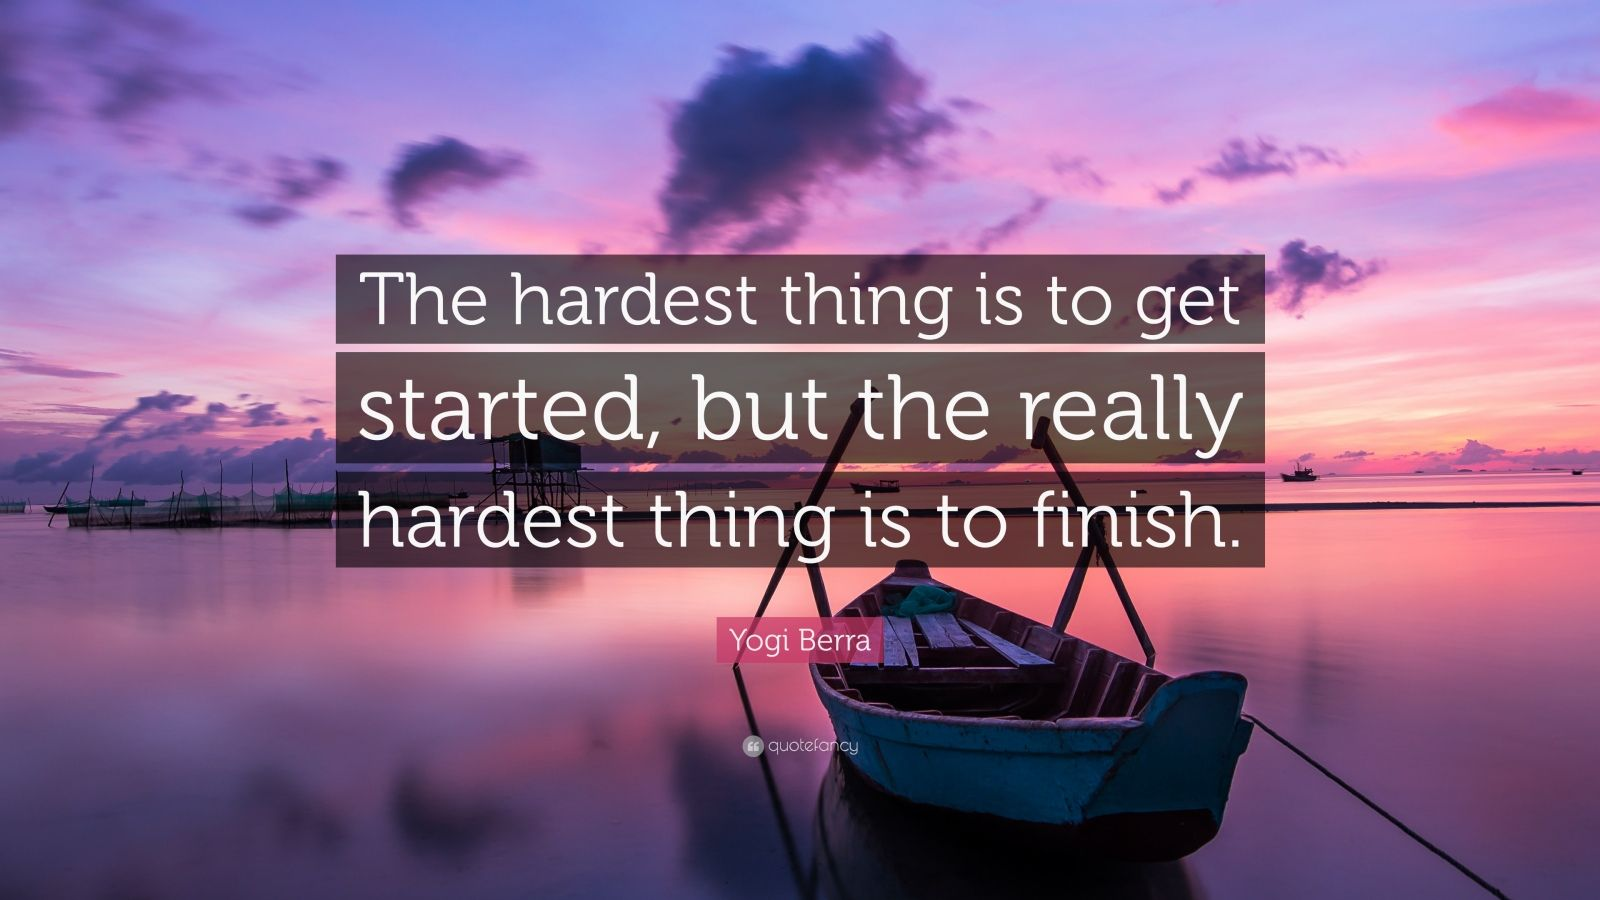 """Yogi Berra Quote: """"The hardest thing is to get started, but the really hardest thing is to finish."""""""